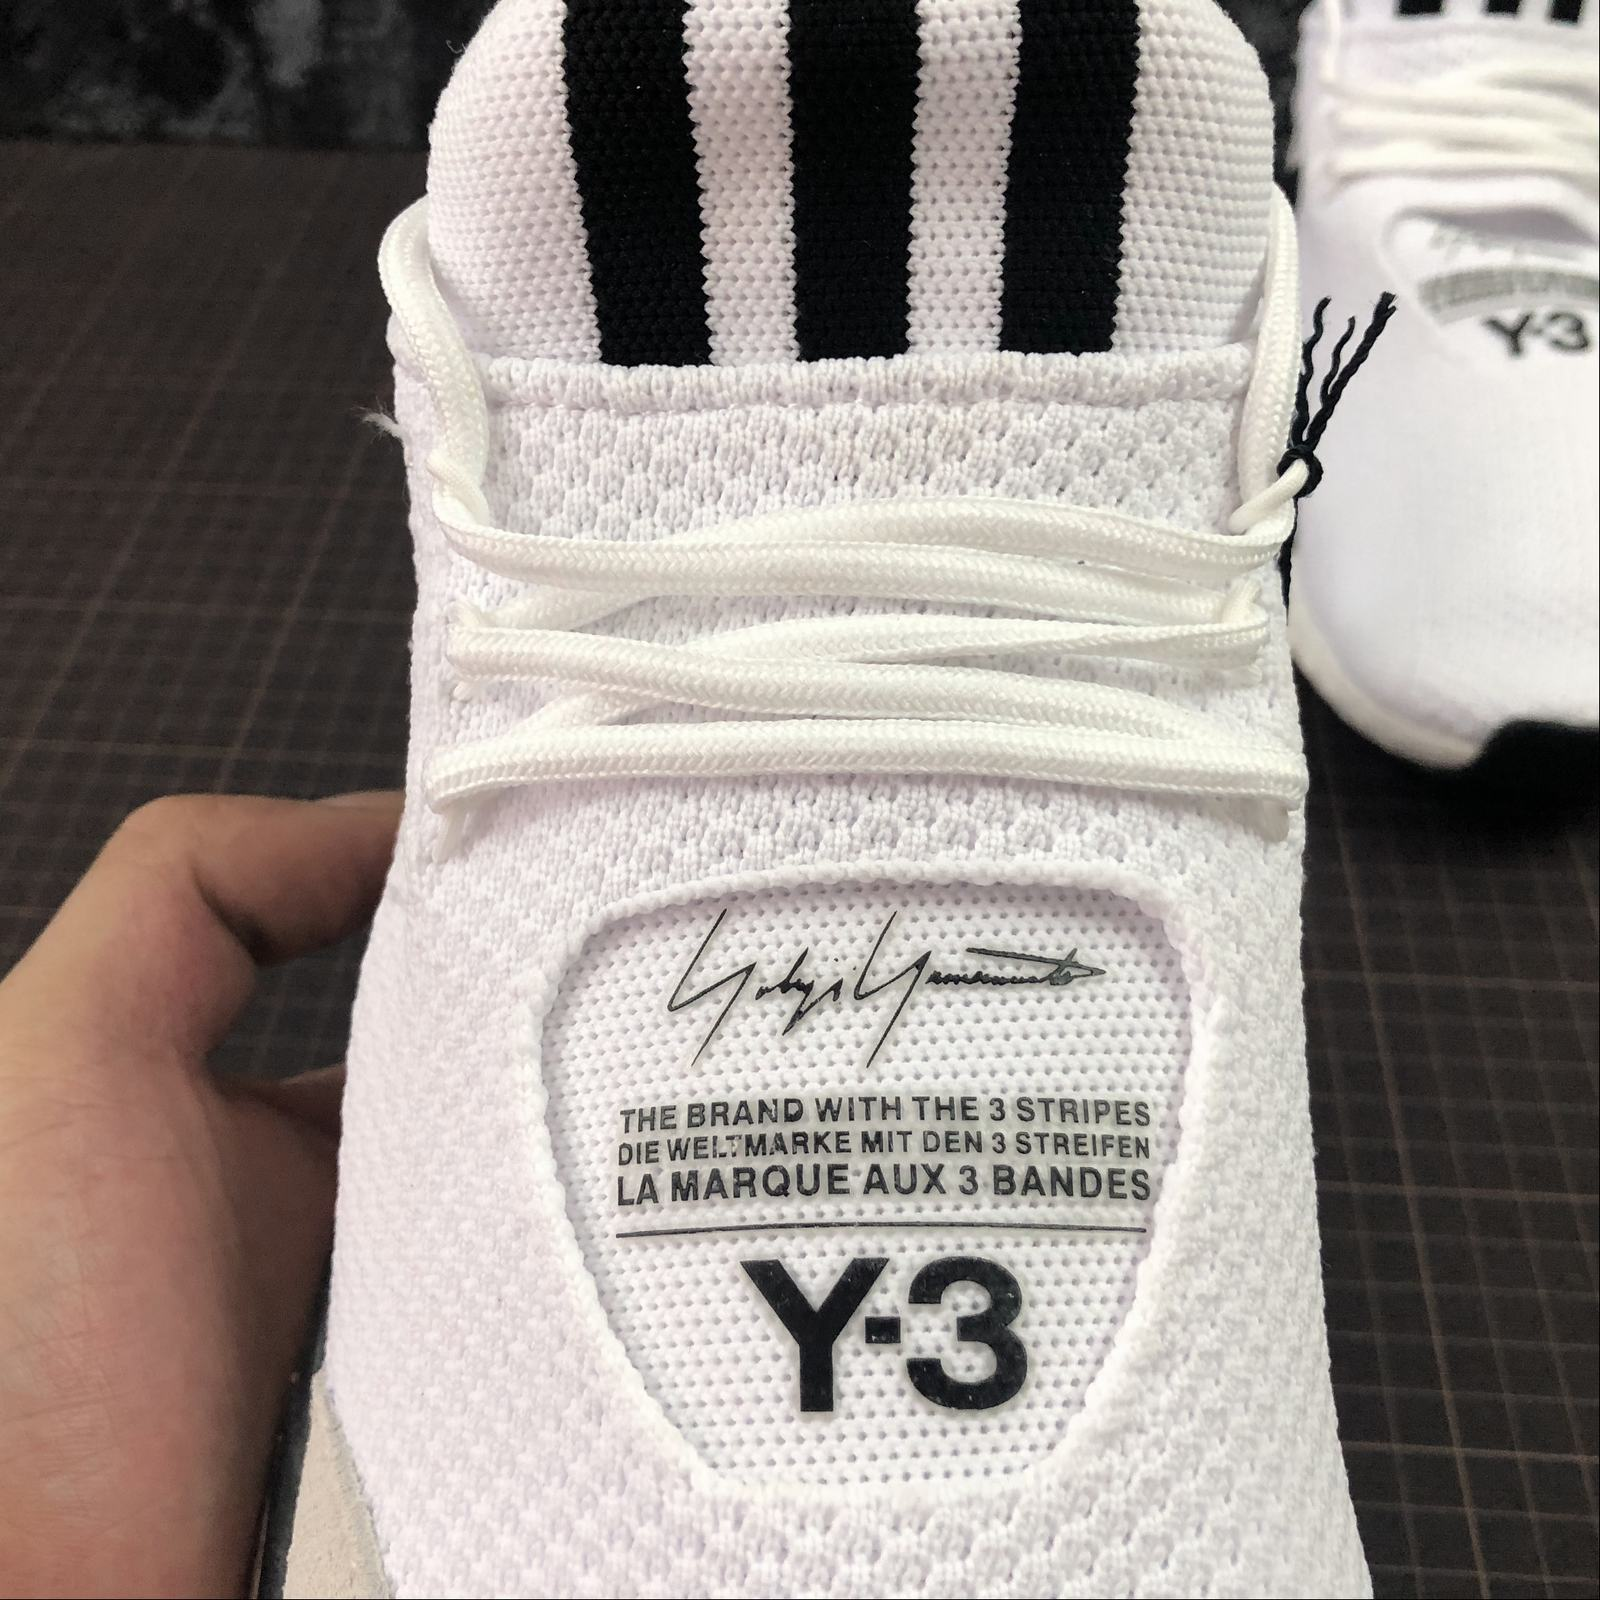 Мужские кроссовки Adidas Y-3 Saikou Boost Men White,Black,Black - фото №7